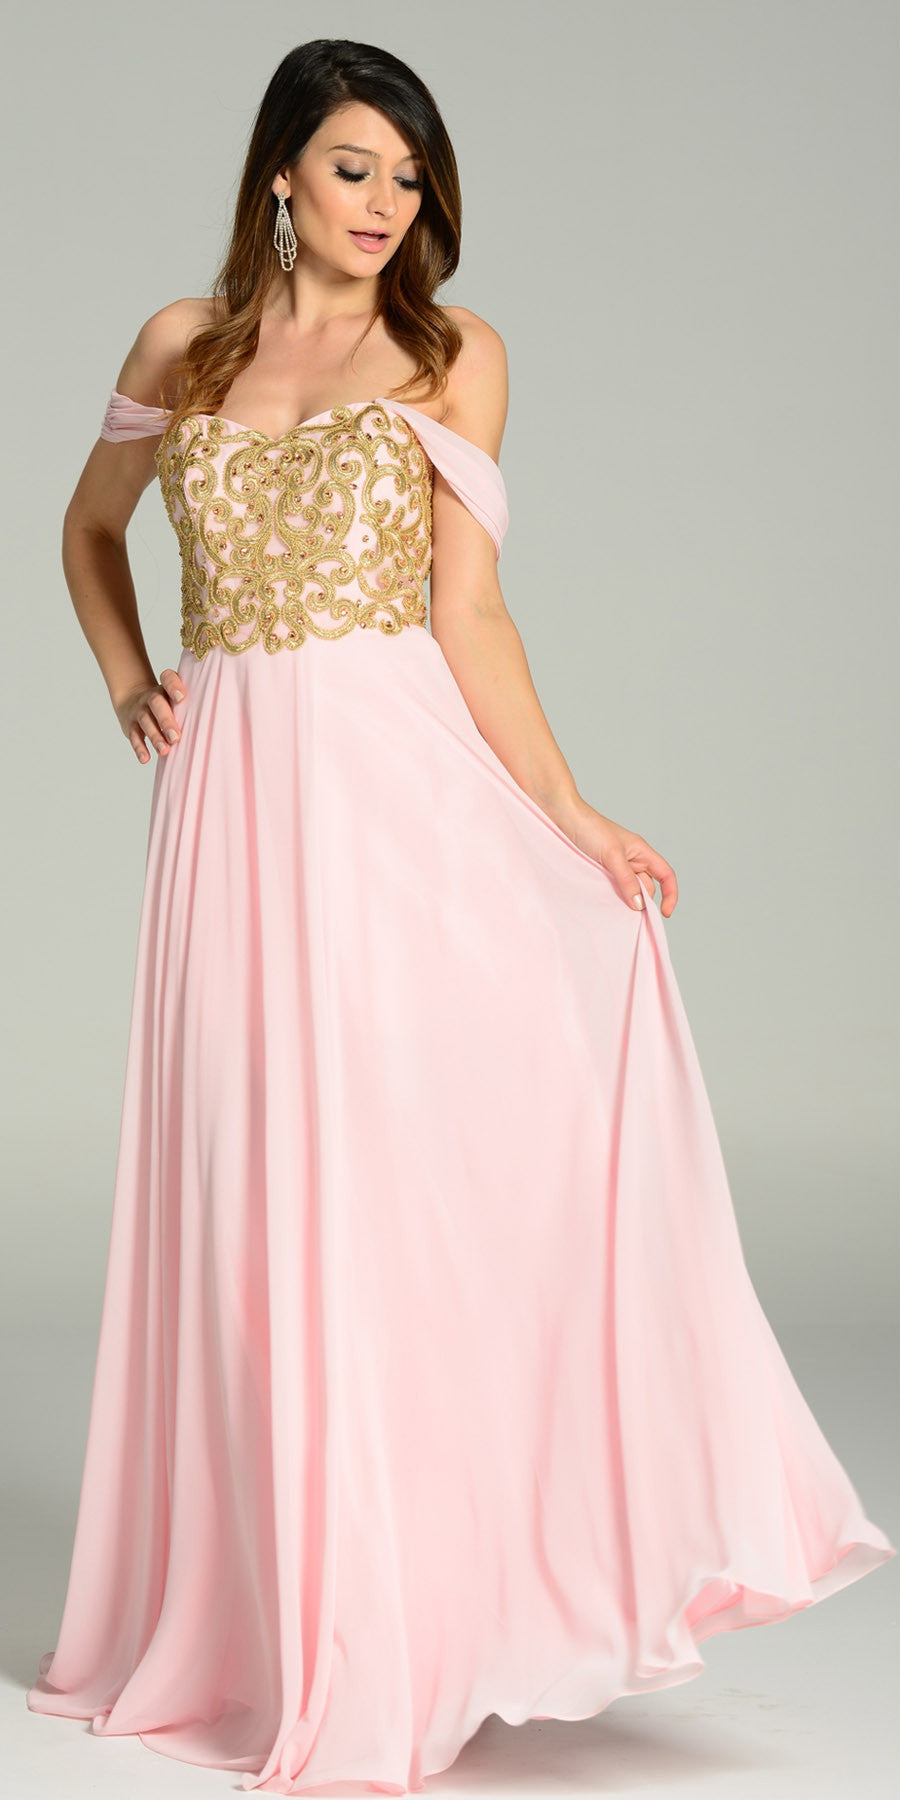 650b37ecd492 Full Length Chiffon Spanish Style Pink Gold Dress Off Shoulder Lace  Applique. Tap to expand